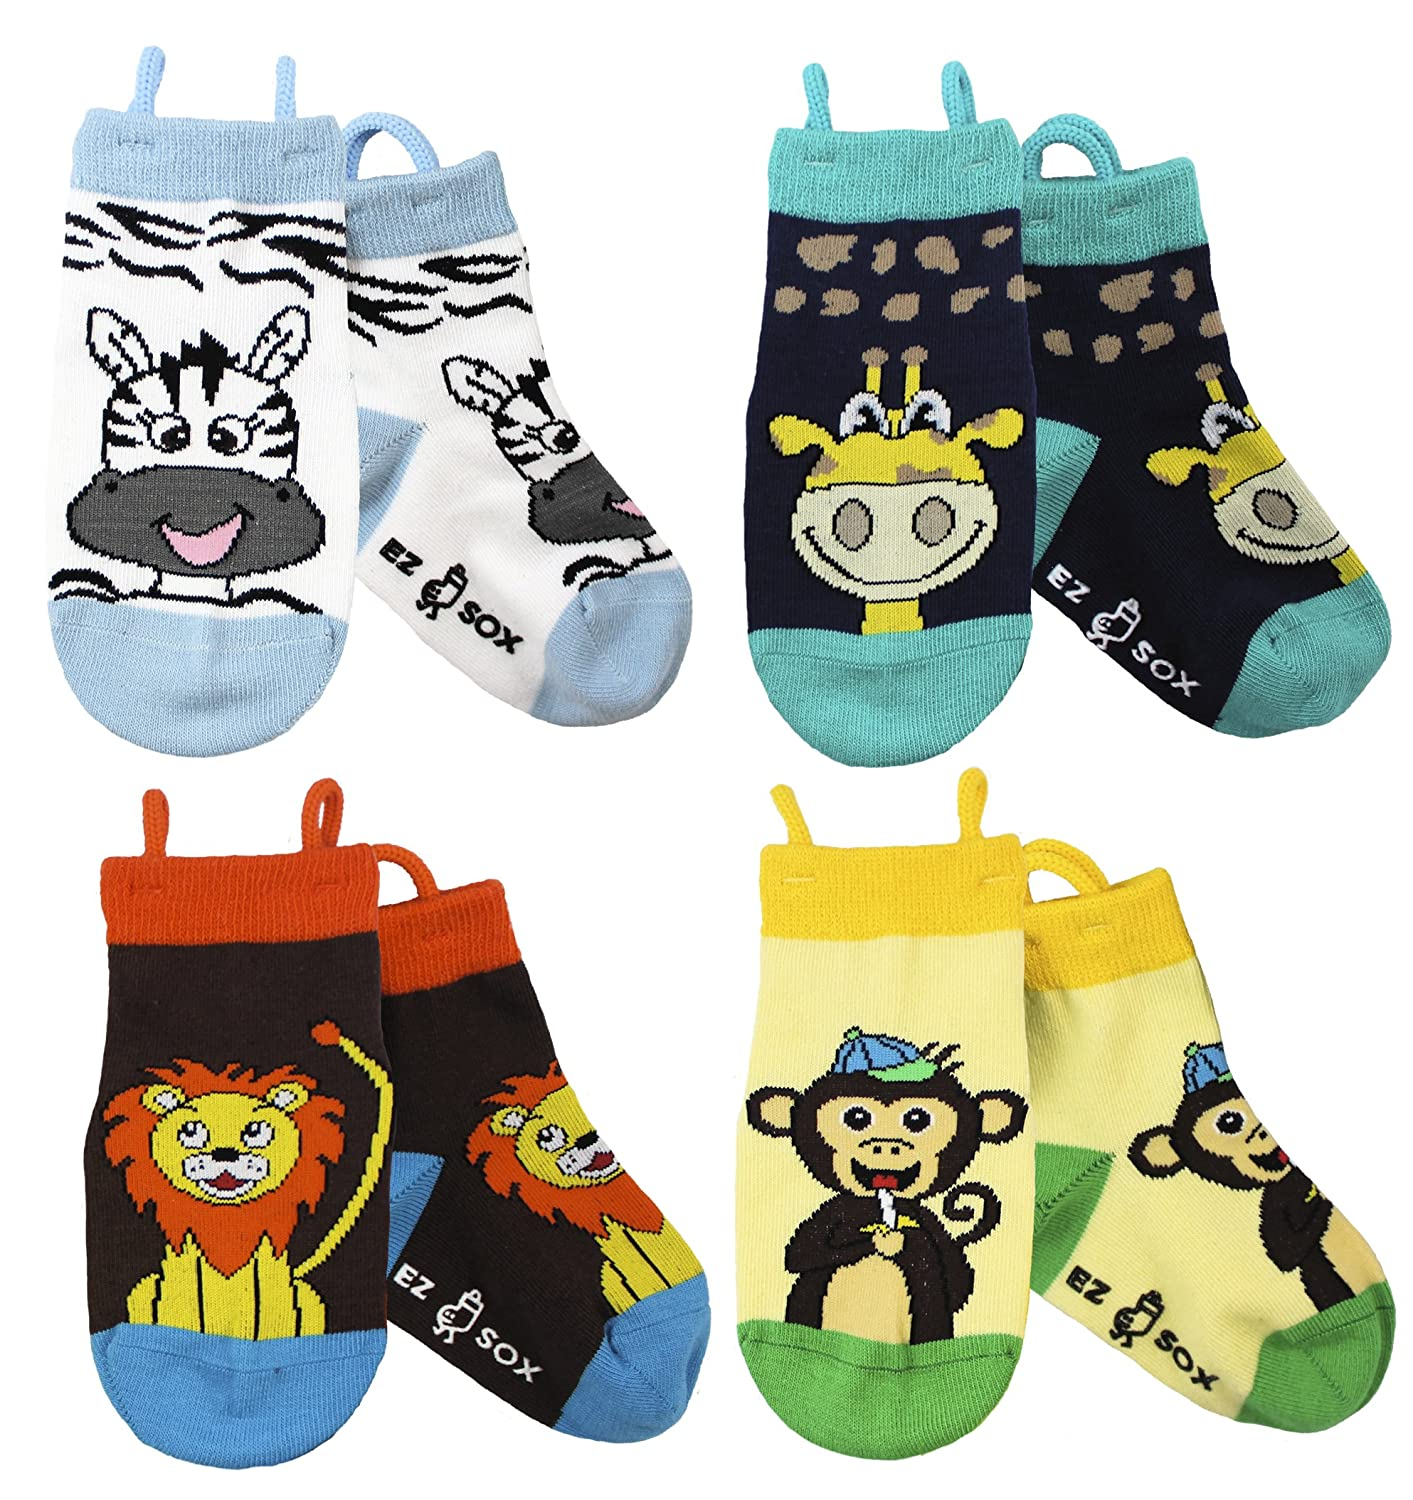 Toddler Boys Girls Non Skid Cotton Seamless Toe Socks Anti Slip Grip, Pull Up Loops Ez Sox Pack-Animal-CA